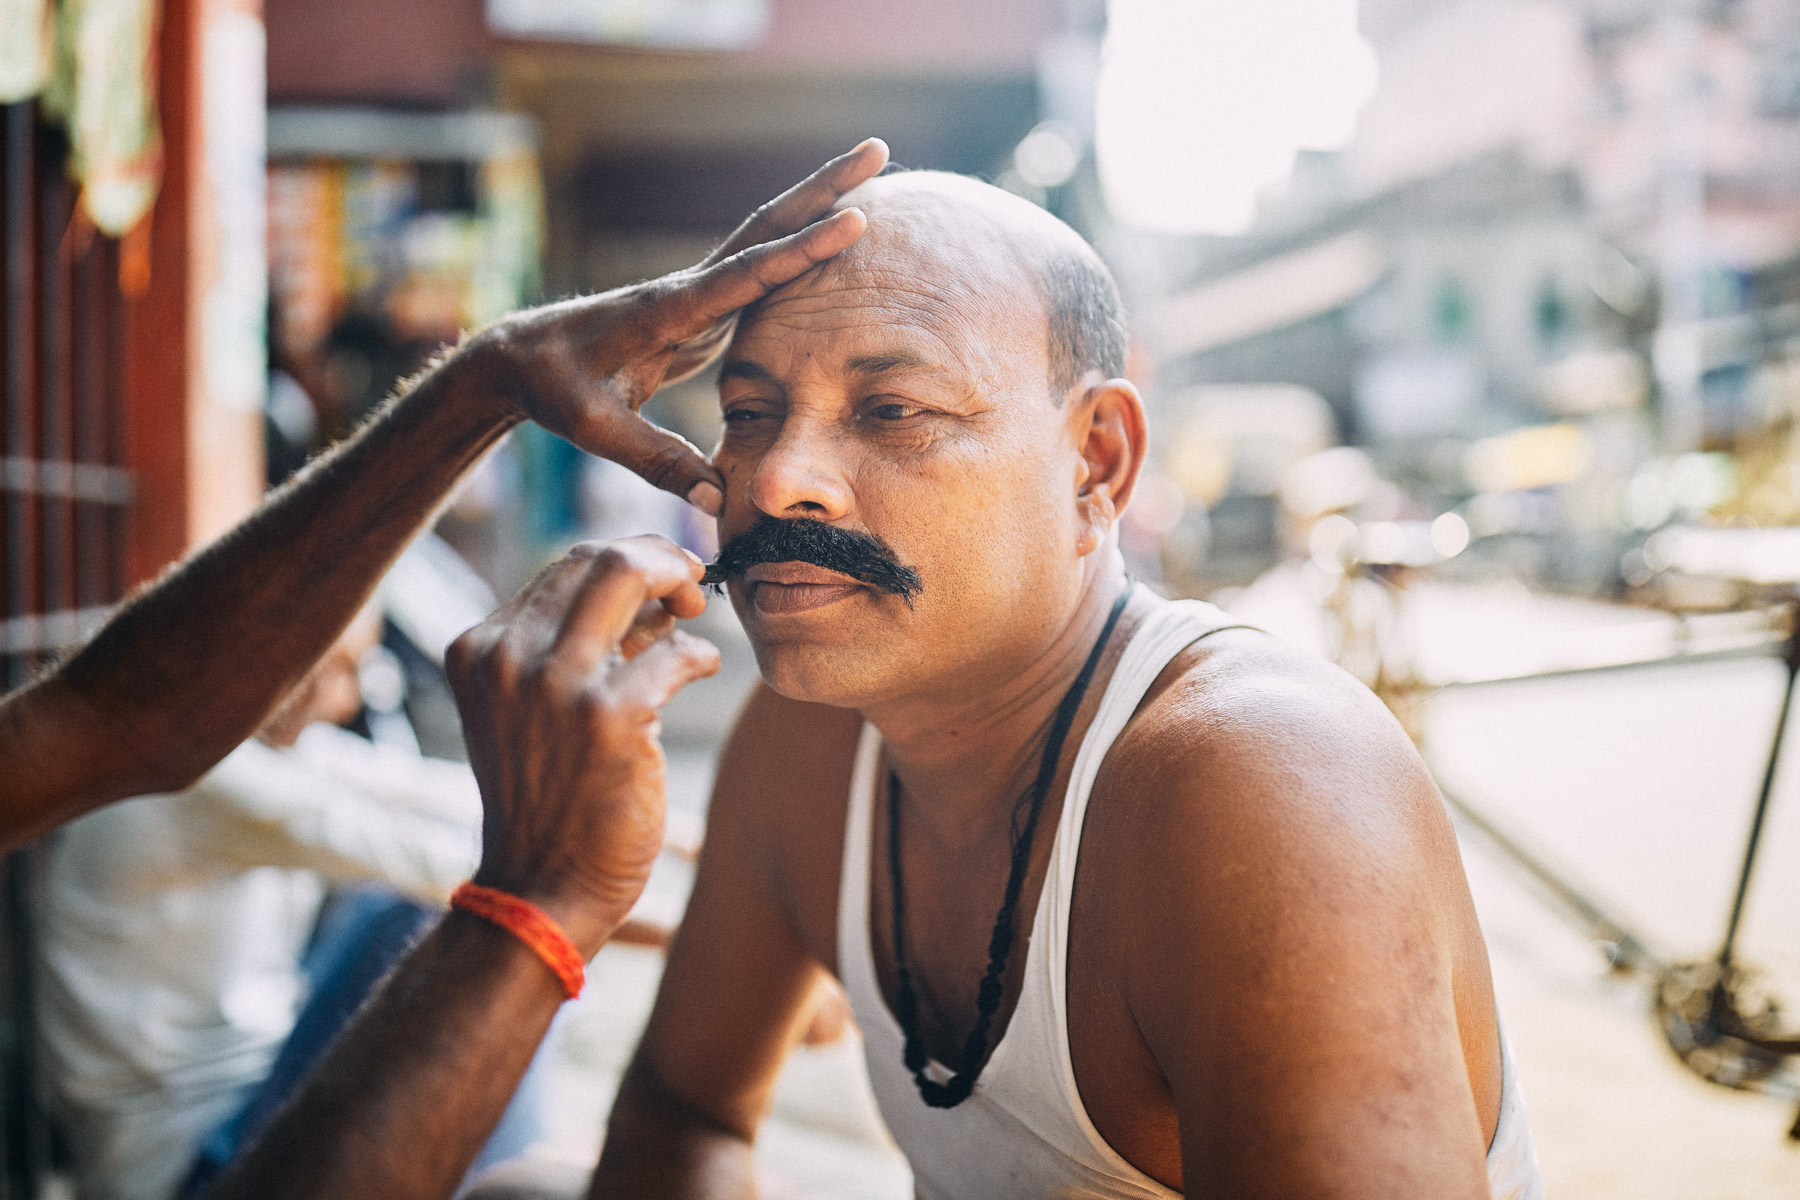 A man gets his mustache dyed on the streets of Kolkata, India.